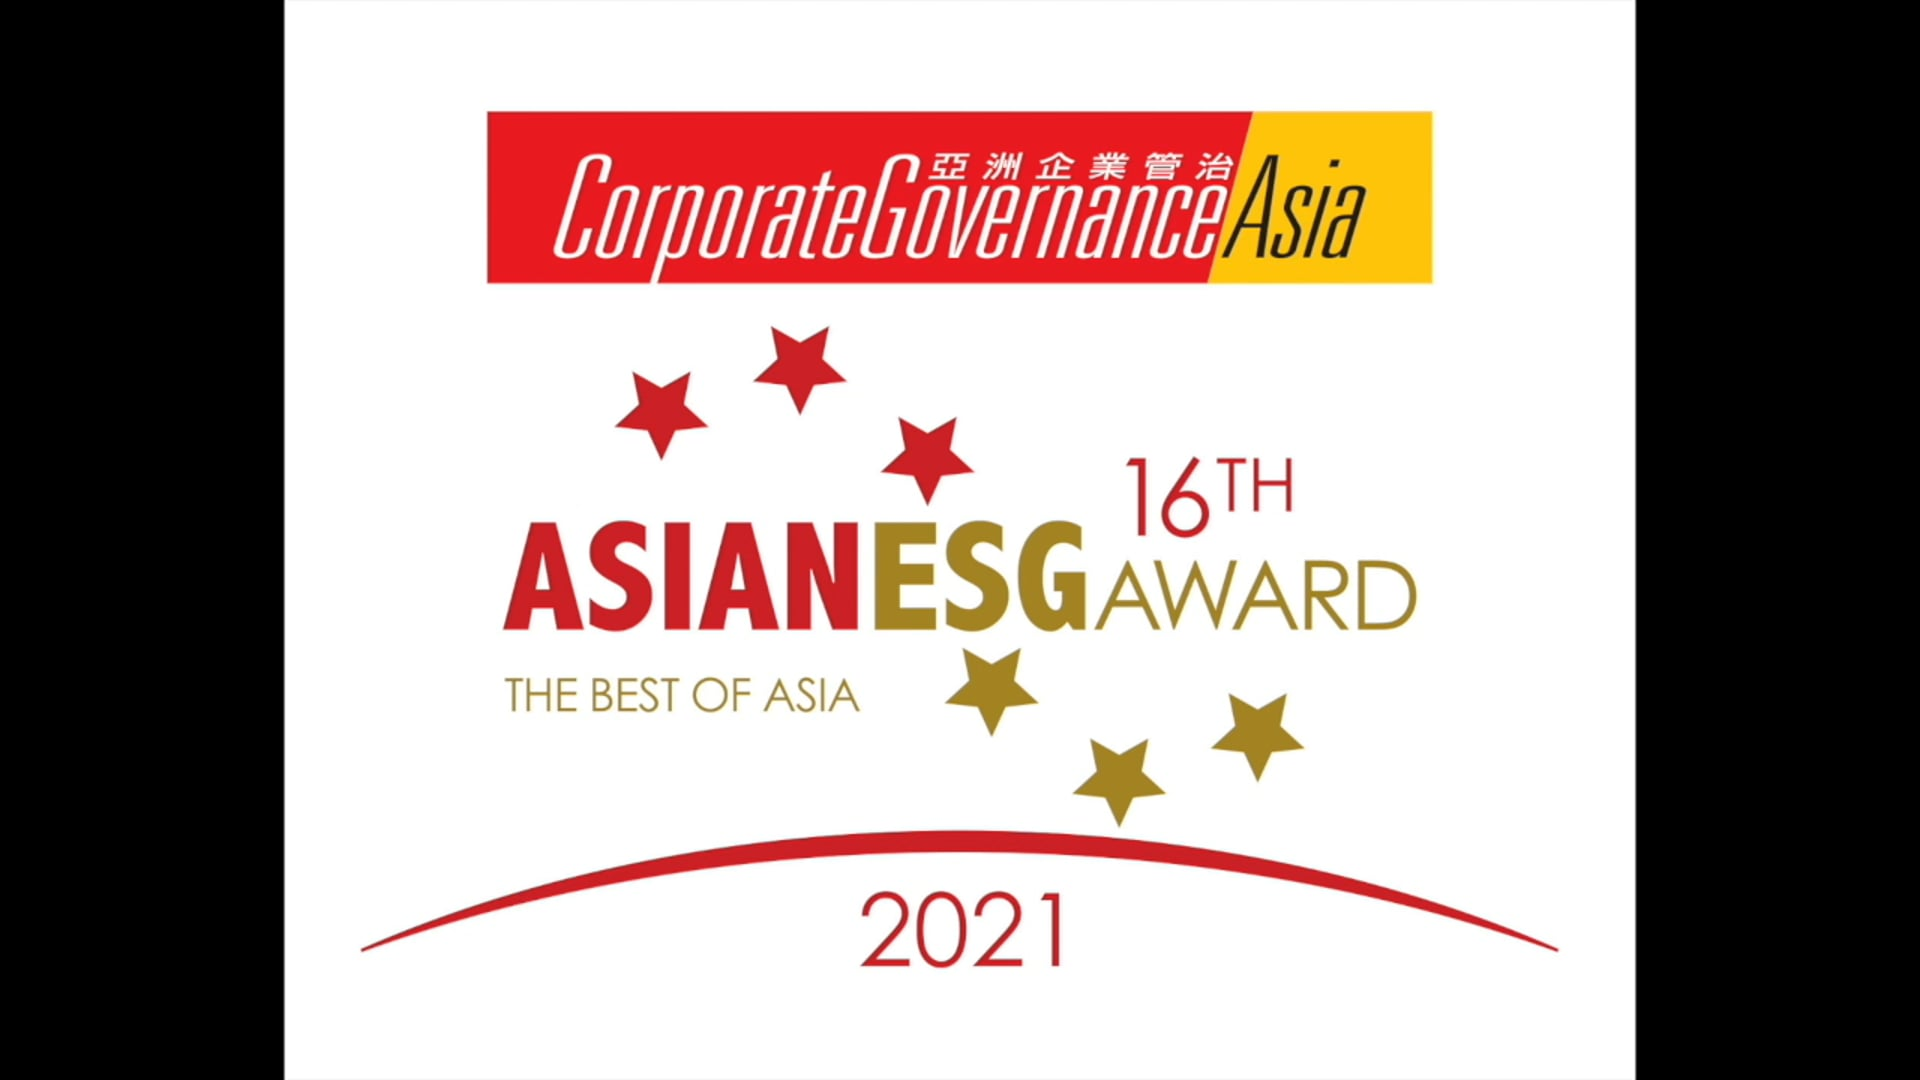 Corporate Governance Asia 16th Asian ESG Award Message 2021 - Resonating Hope for a Re-emerging Asia